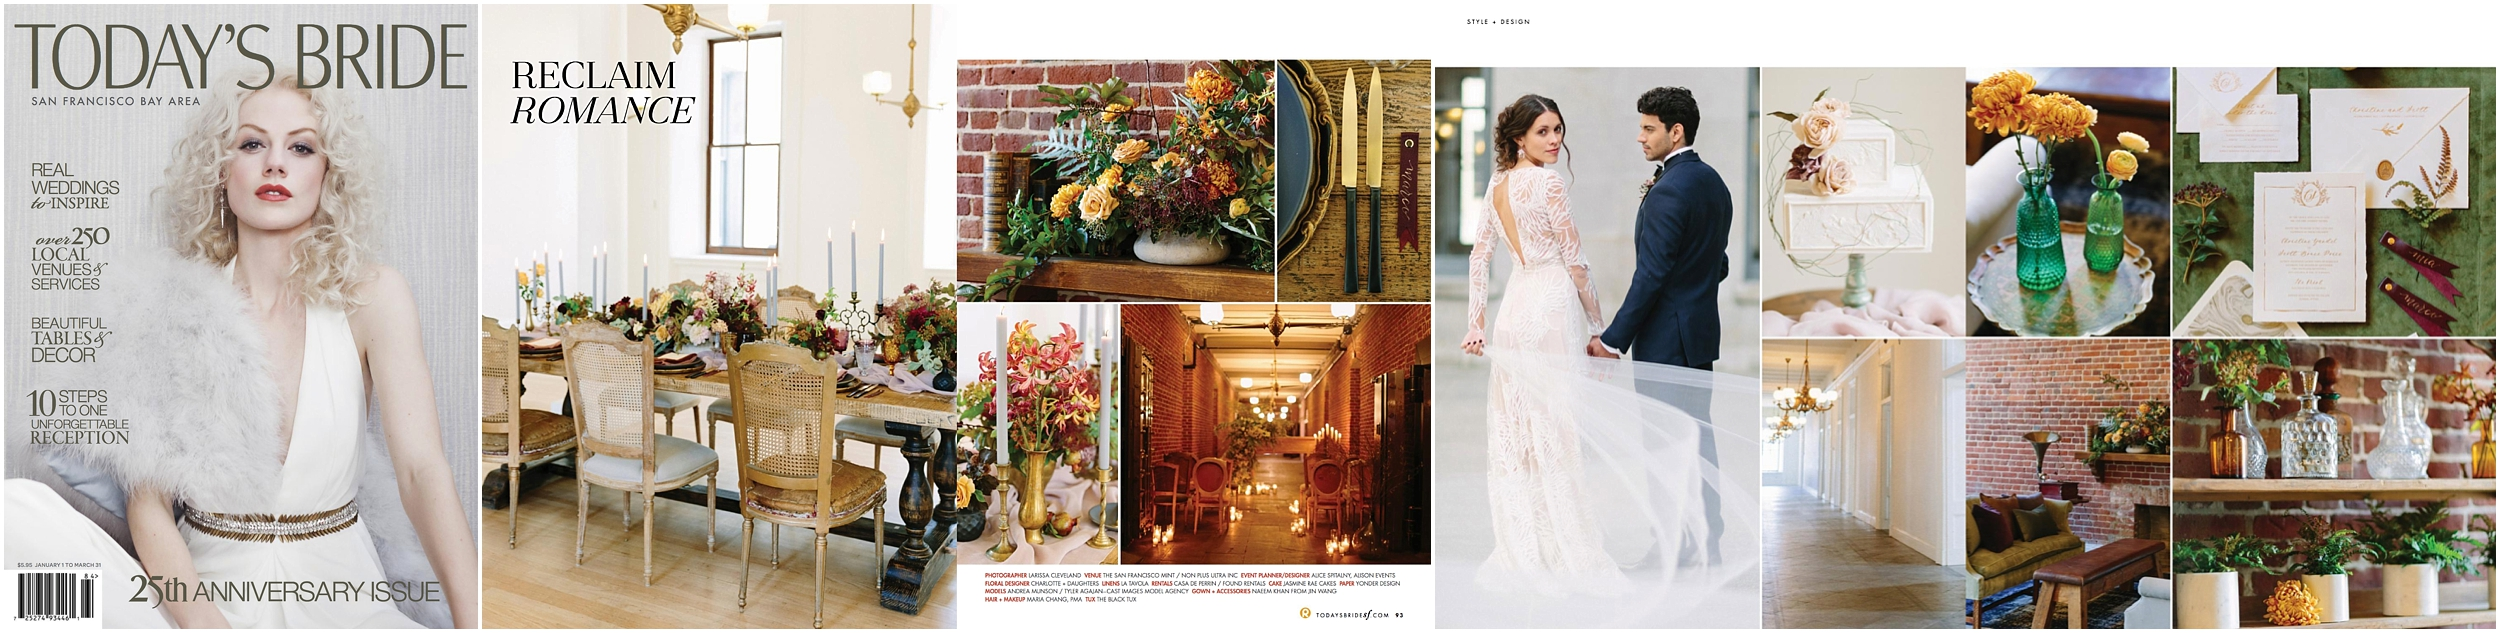 TODAYS BRIDE MAGAZINE